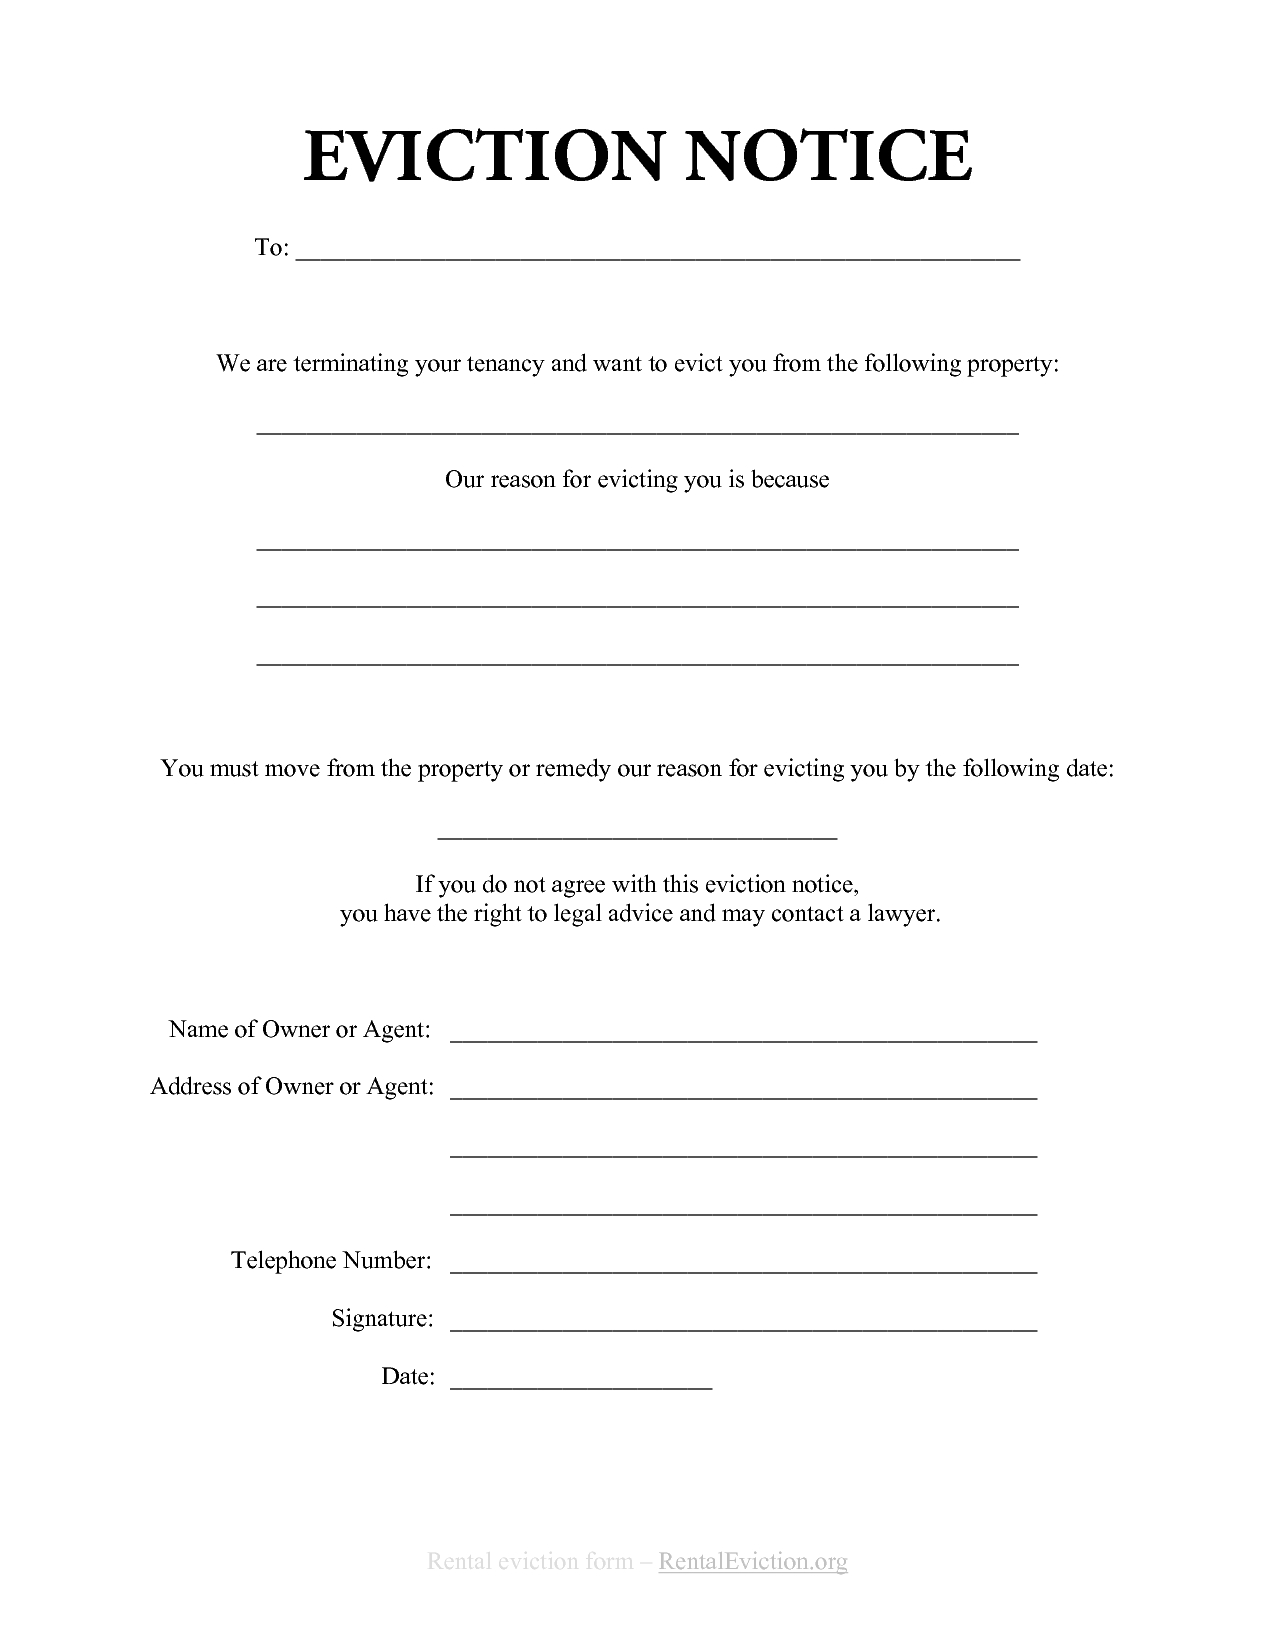 Eviction Letter Template Pdf - Free Print Out Eviction Notices Free Rental Eviction Notice